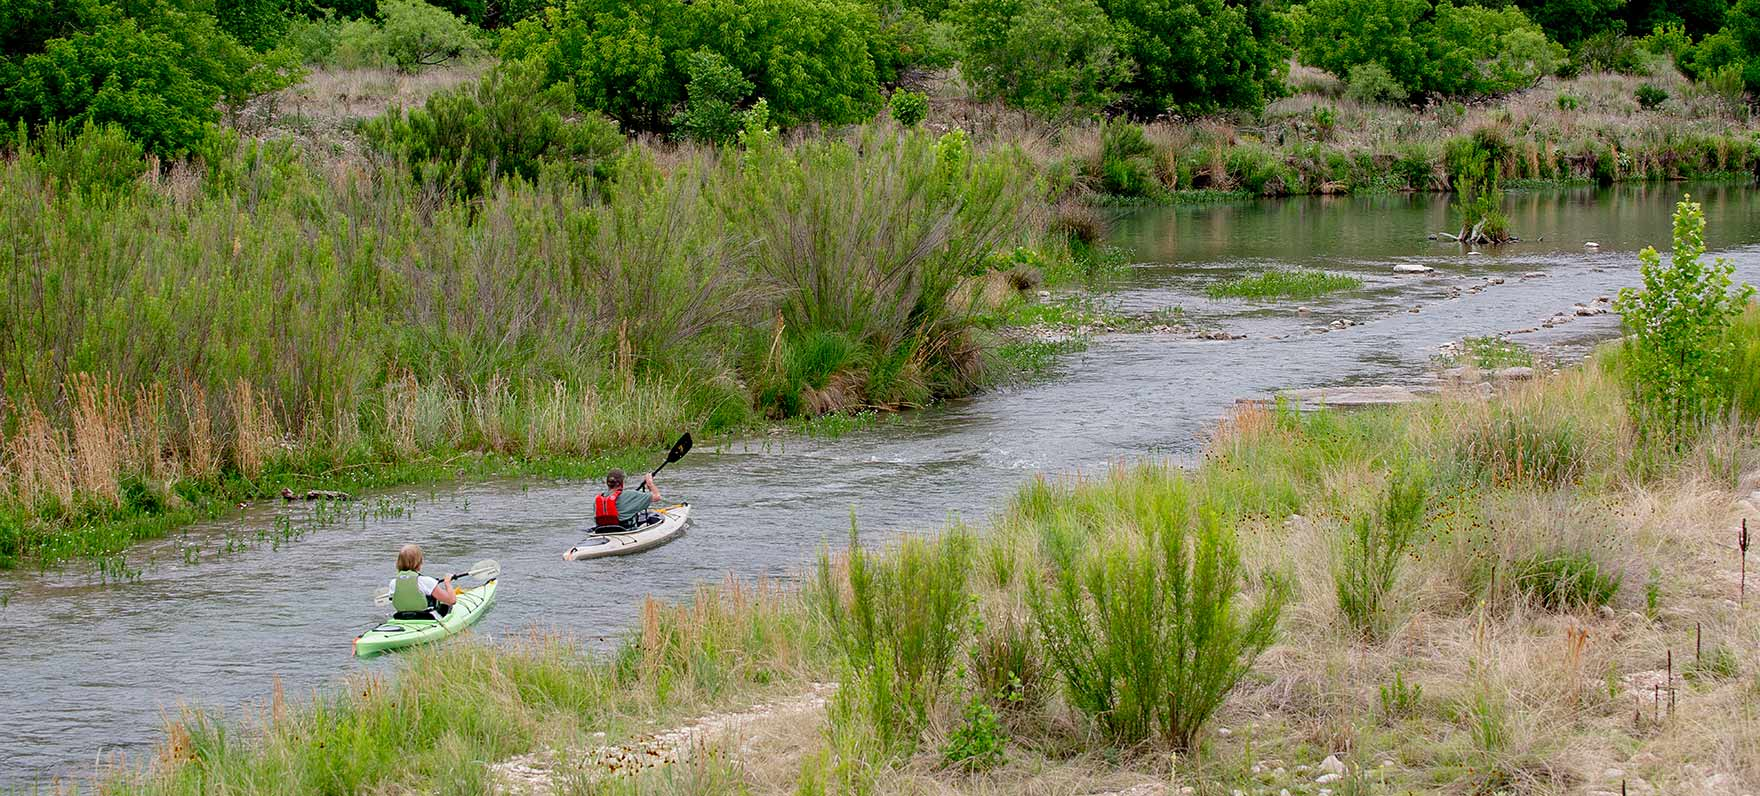 Best rivers in Texas: Llano River